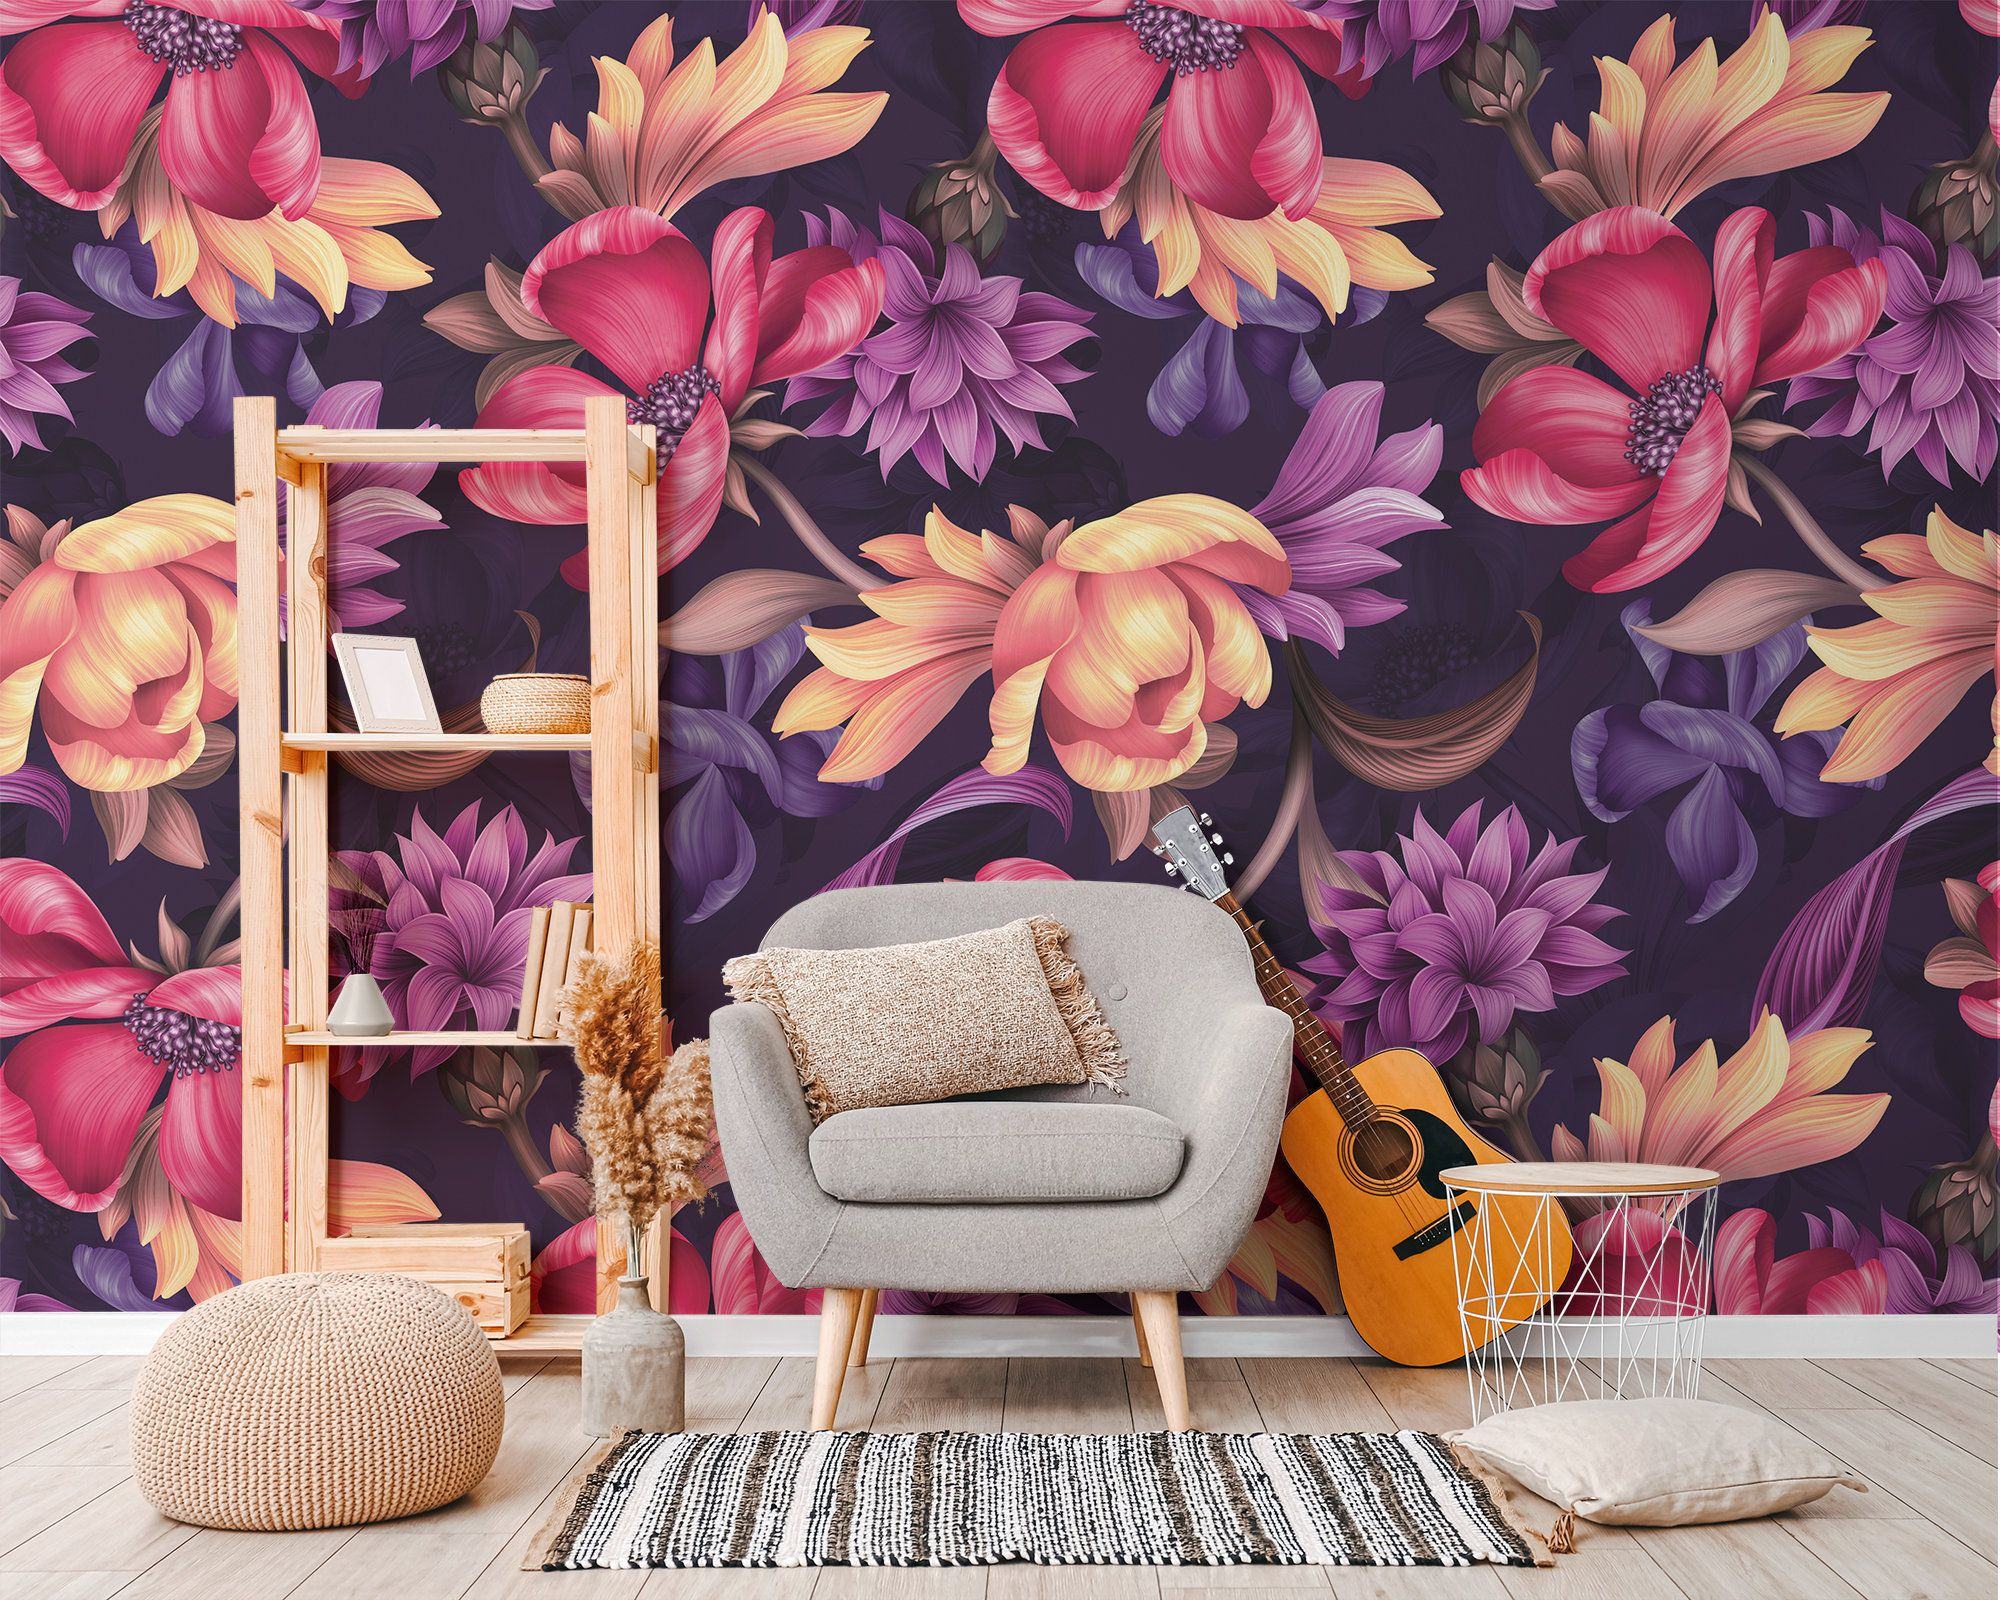 Purple Red And Yellow Floral Abstract Wallpaper Self Etsy In 2020 Abstract Floral Abstract Wallpaper Yellow Floral